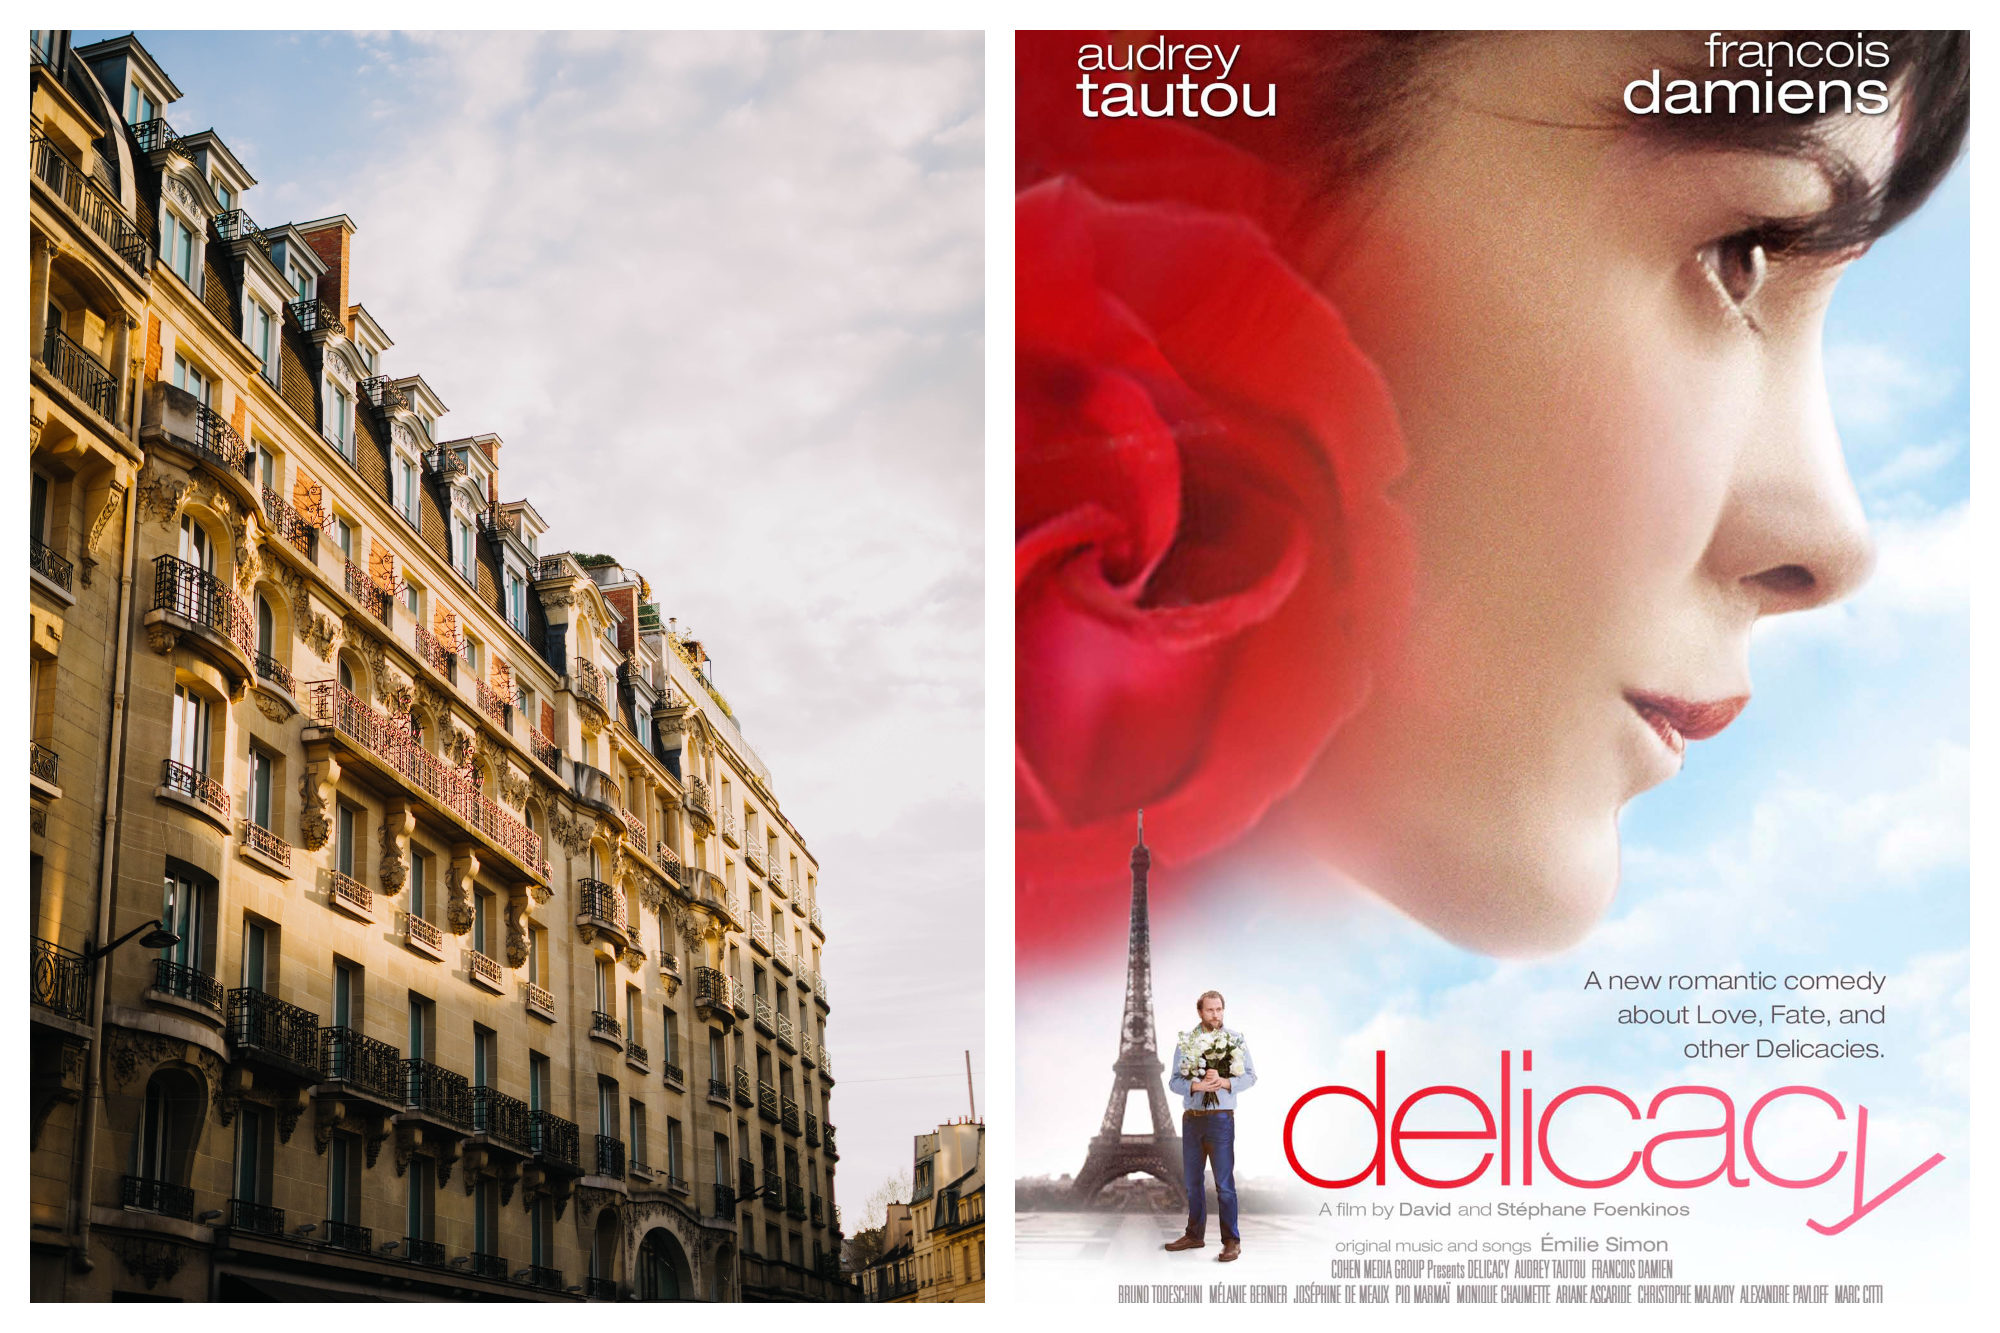 The sunshine hitting a stone building in Paris (left). A poster for the French Netflix movie 'Delicacy' with a photo of Audrey Tautou and the Eiffel Tower  (right).